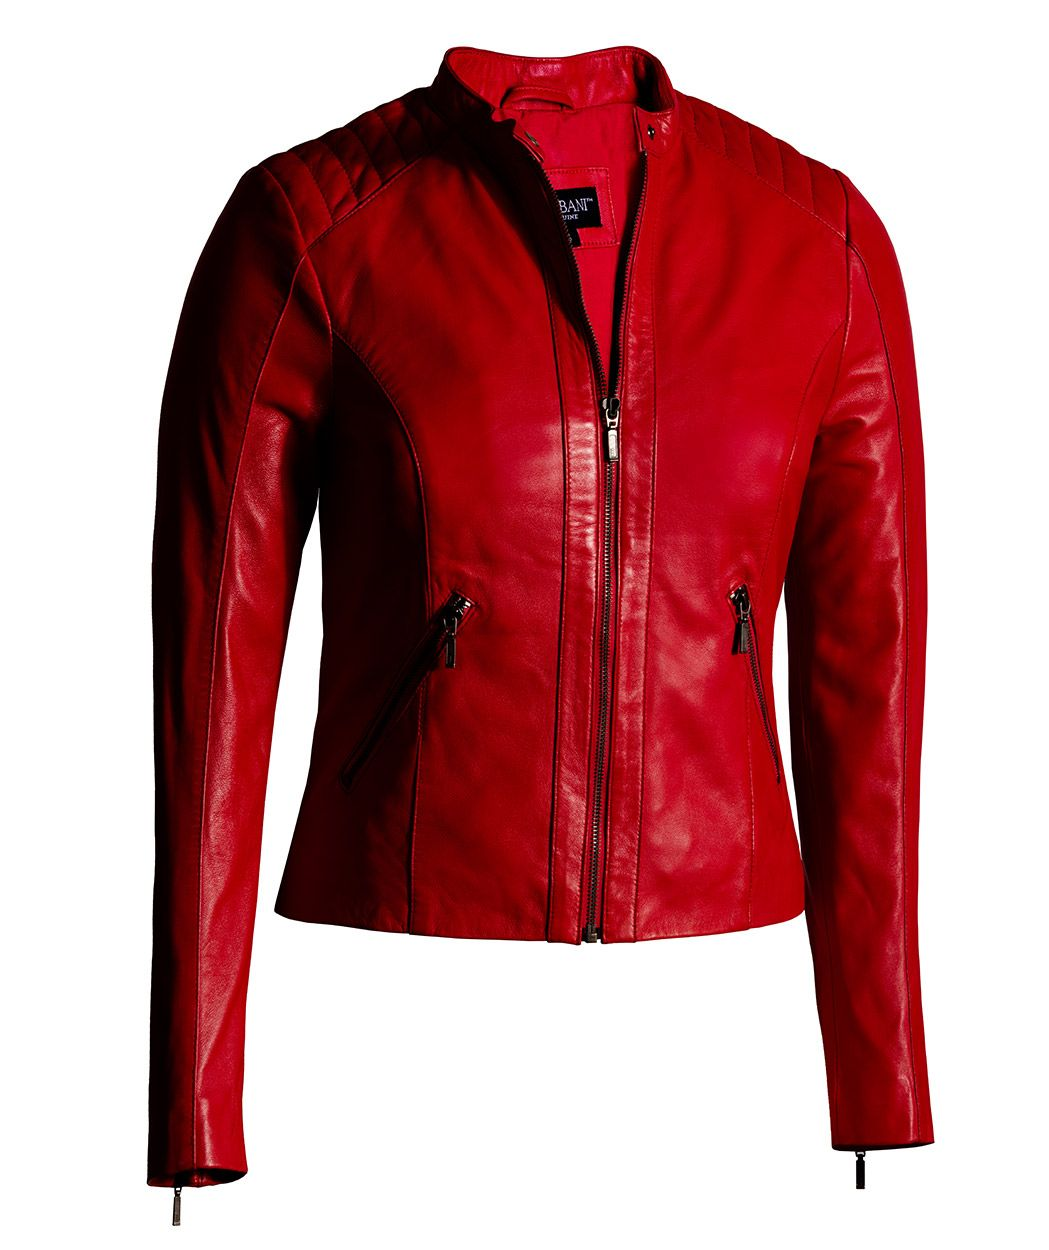 Red Leather Jacket For Women Moto Fashion Genuine Leather Jacket Red Jacket Leather Leather Jackets Women Leather Jacket Women Fashion [ 1250 x 1049 Pixel ]